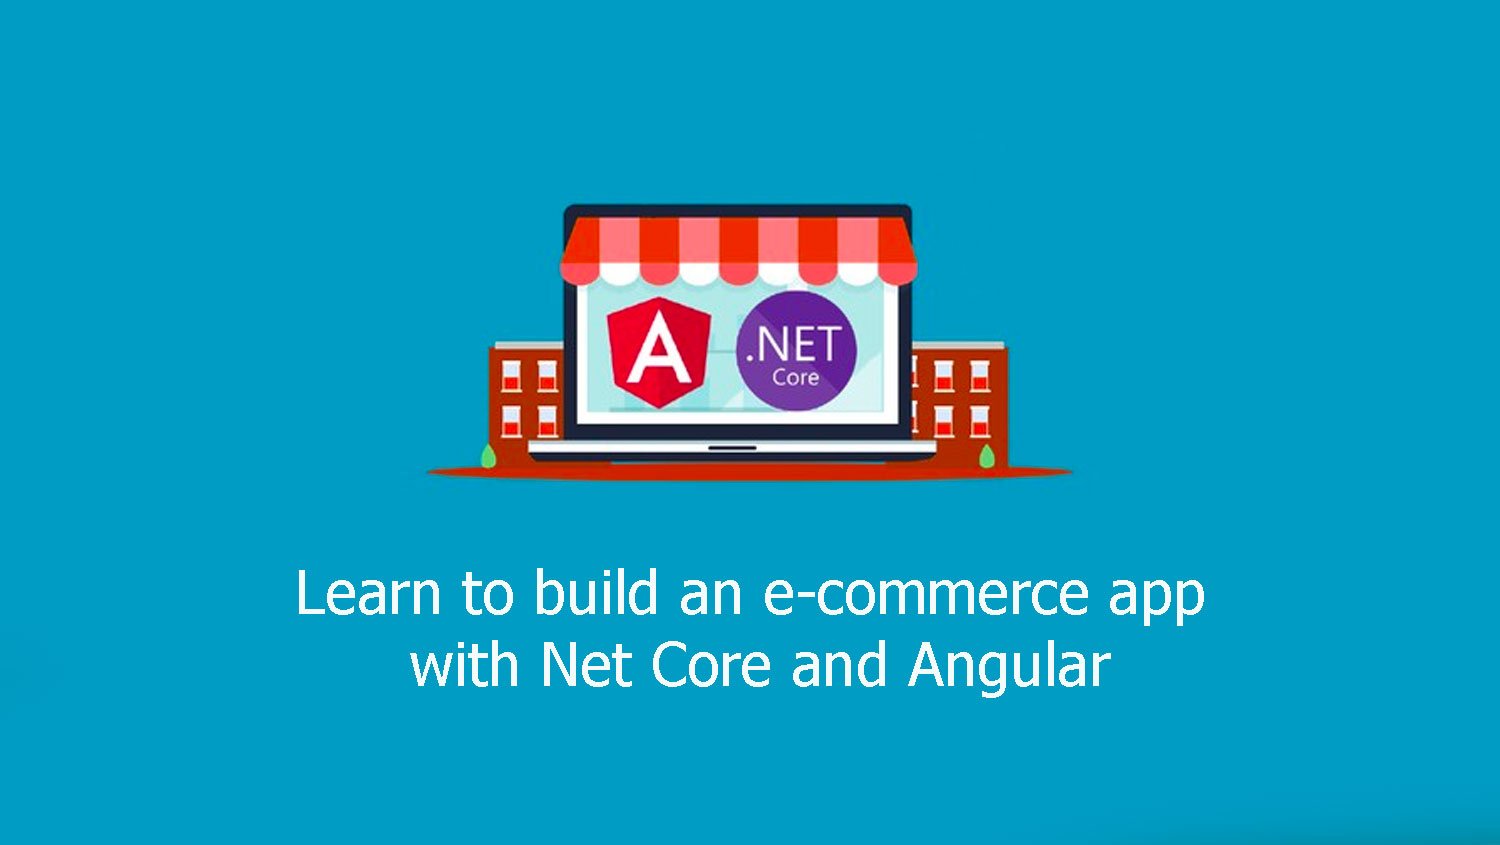 Learn to build an e-commerce app with Net Core and Angular free download